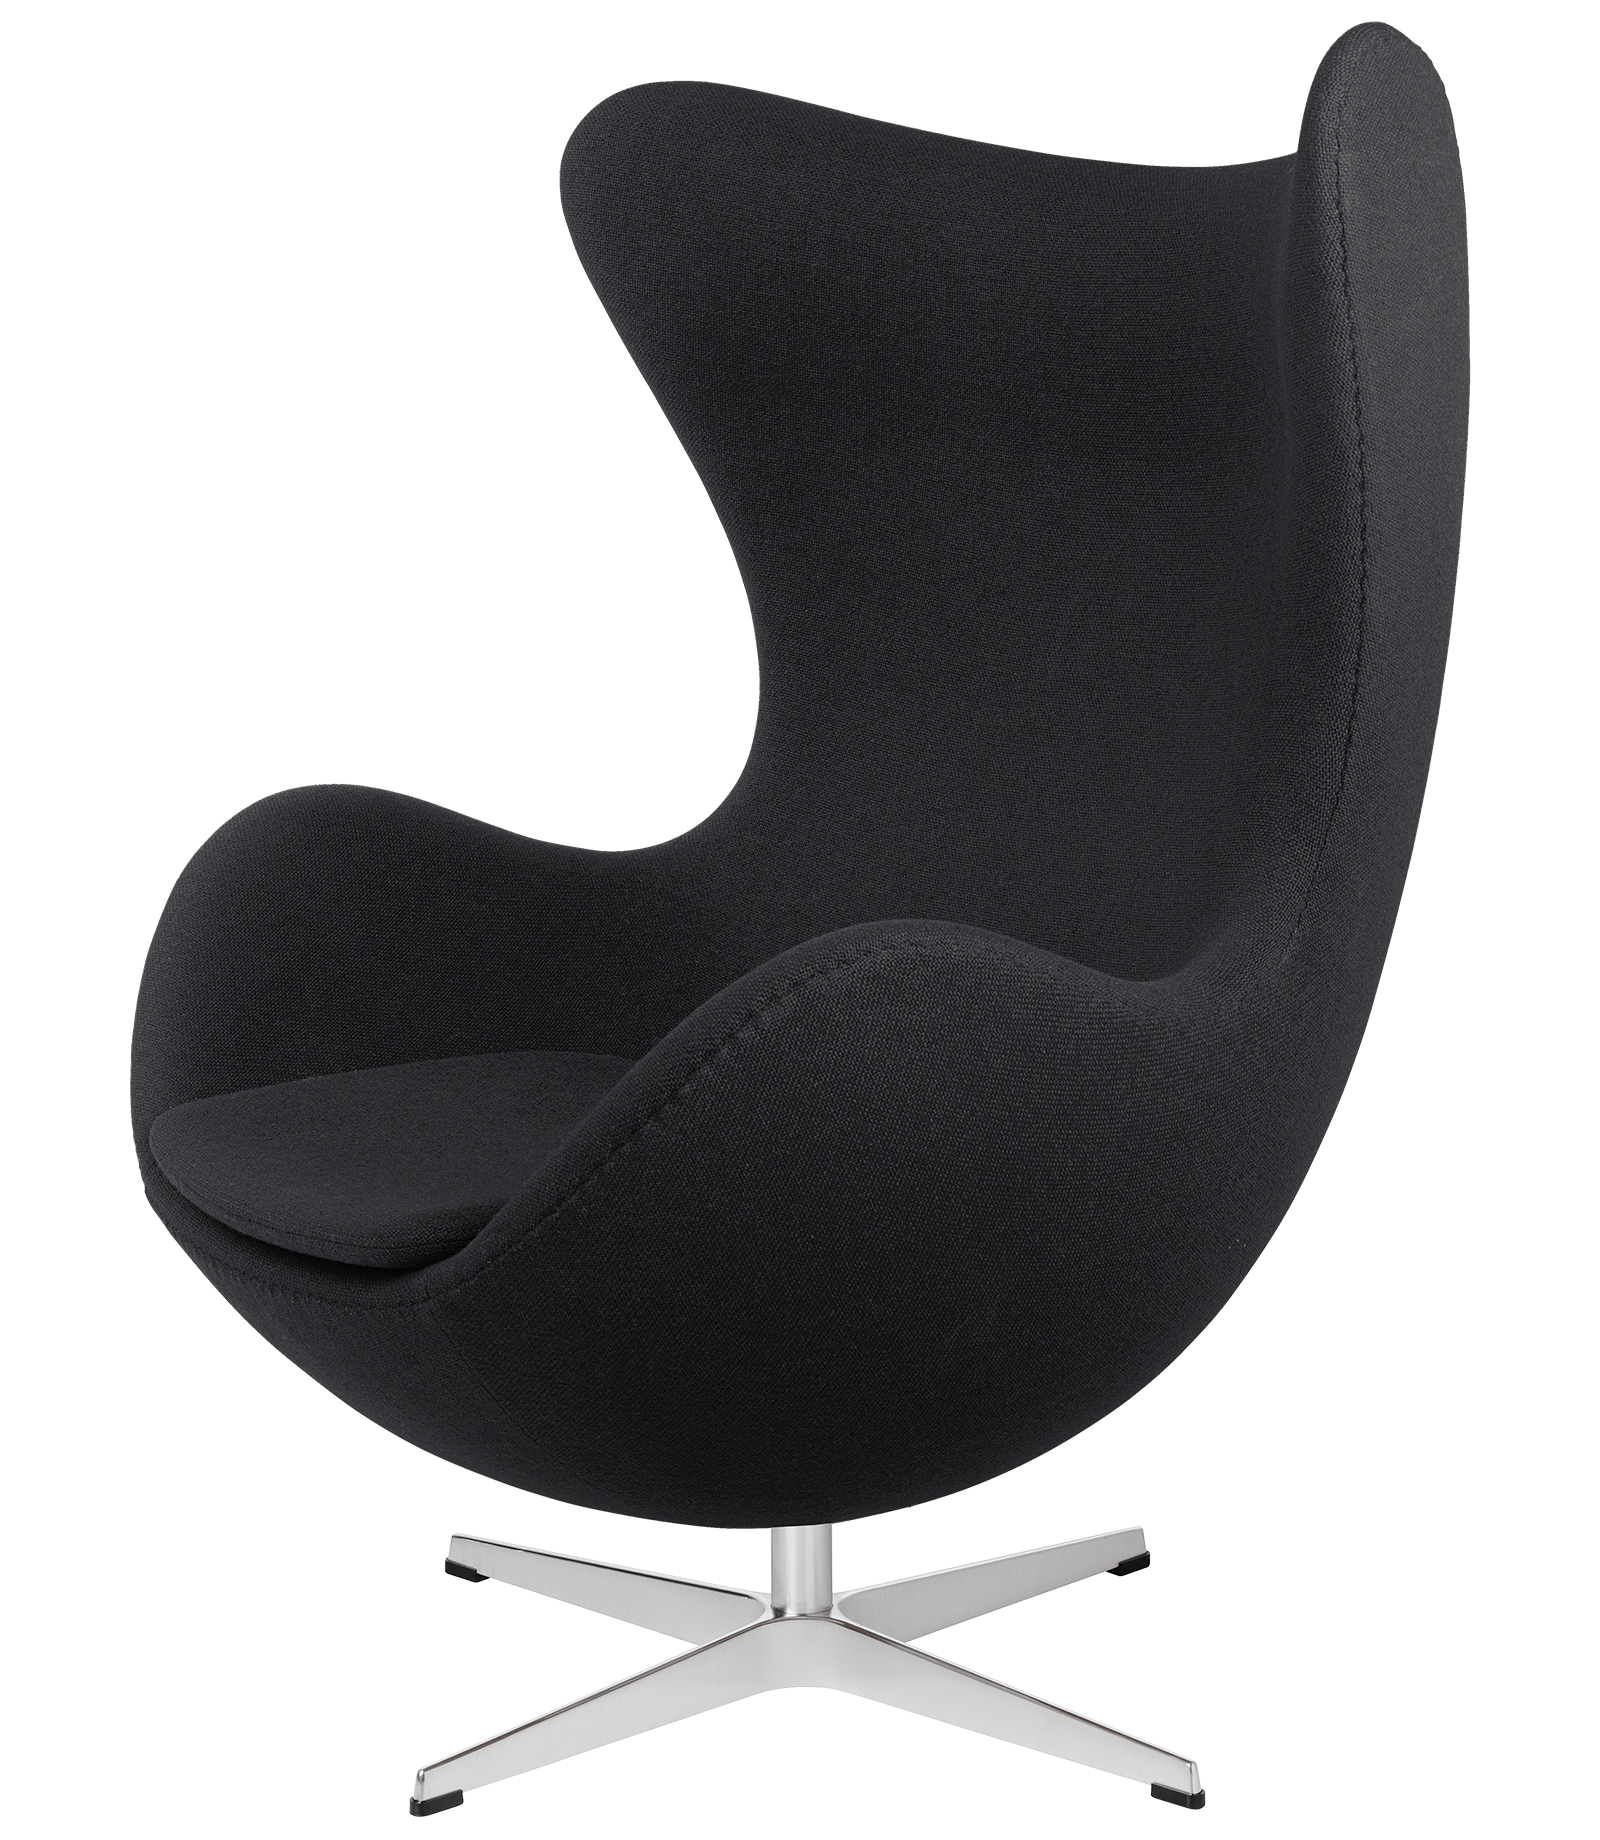 Armchair drawing lounge chair. The egg easy fabric